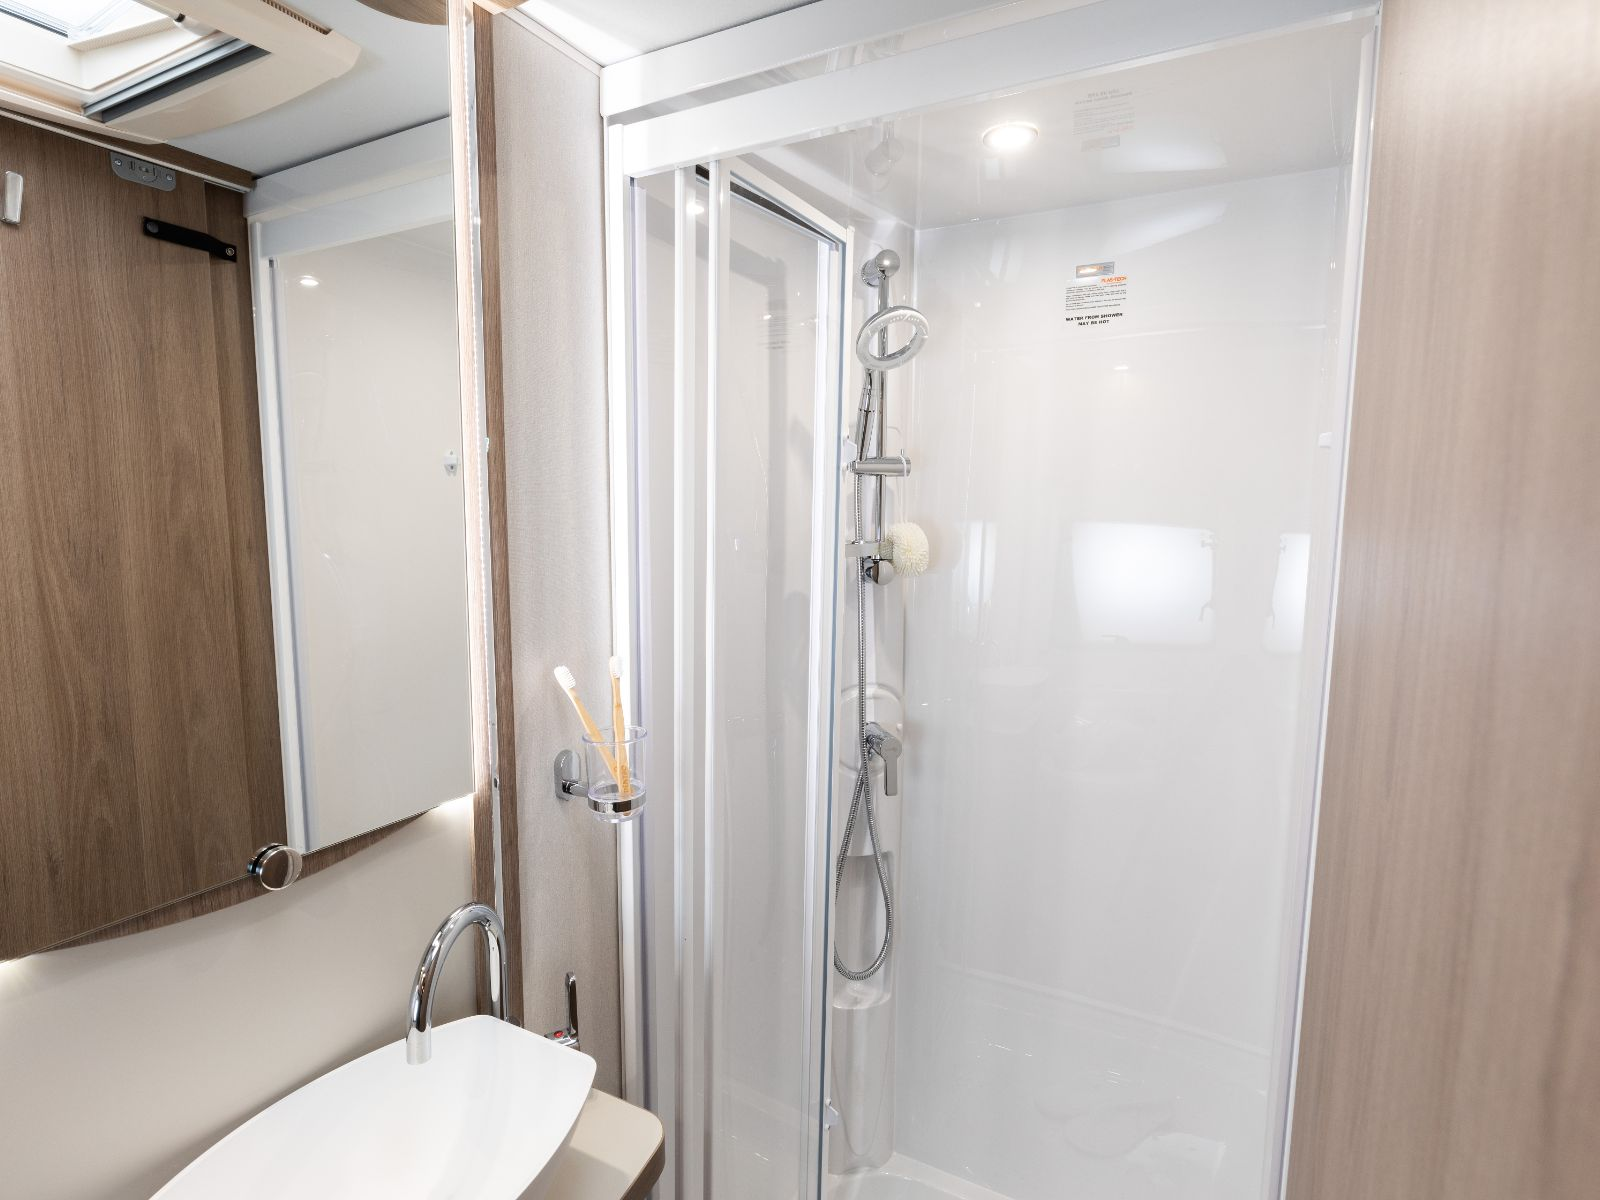 Bathroom layout with walk in shower, sink and mirror'